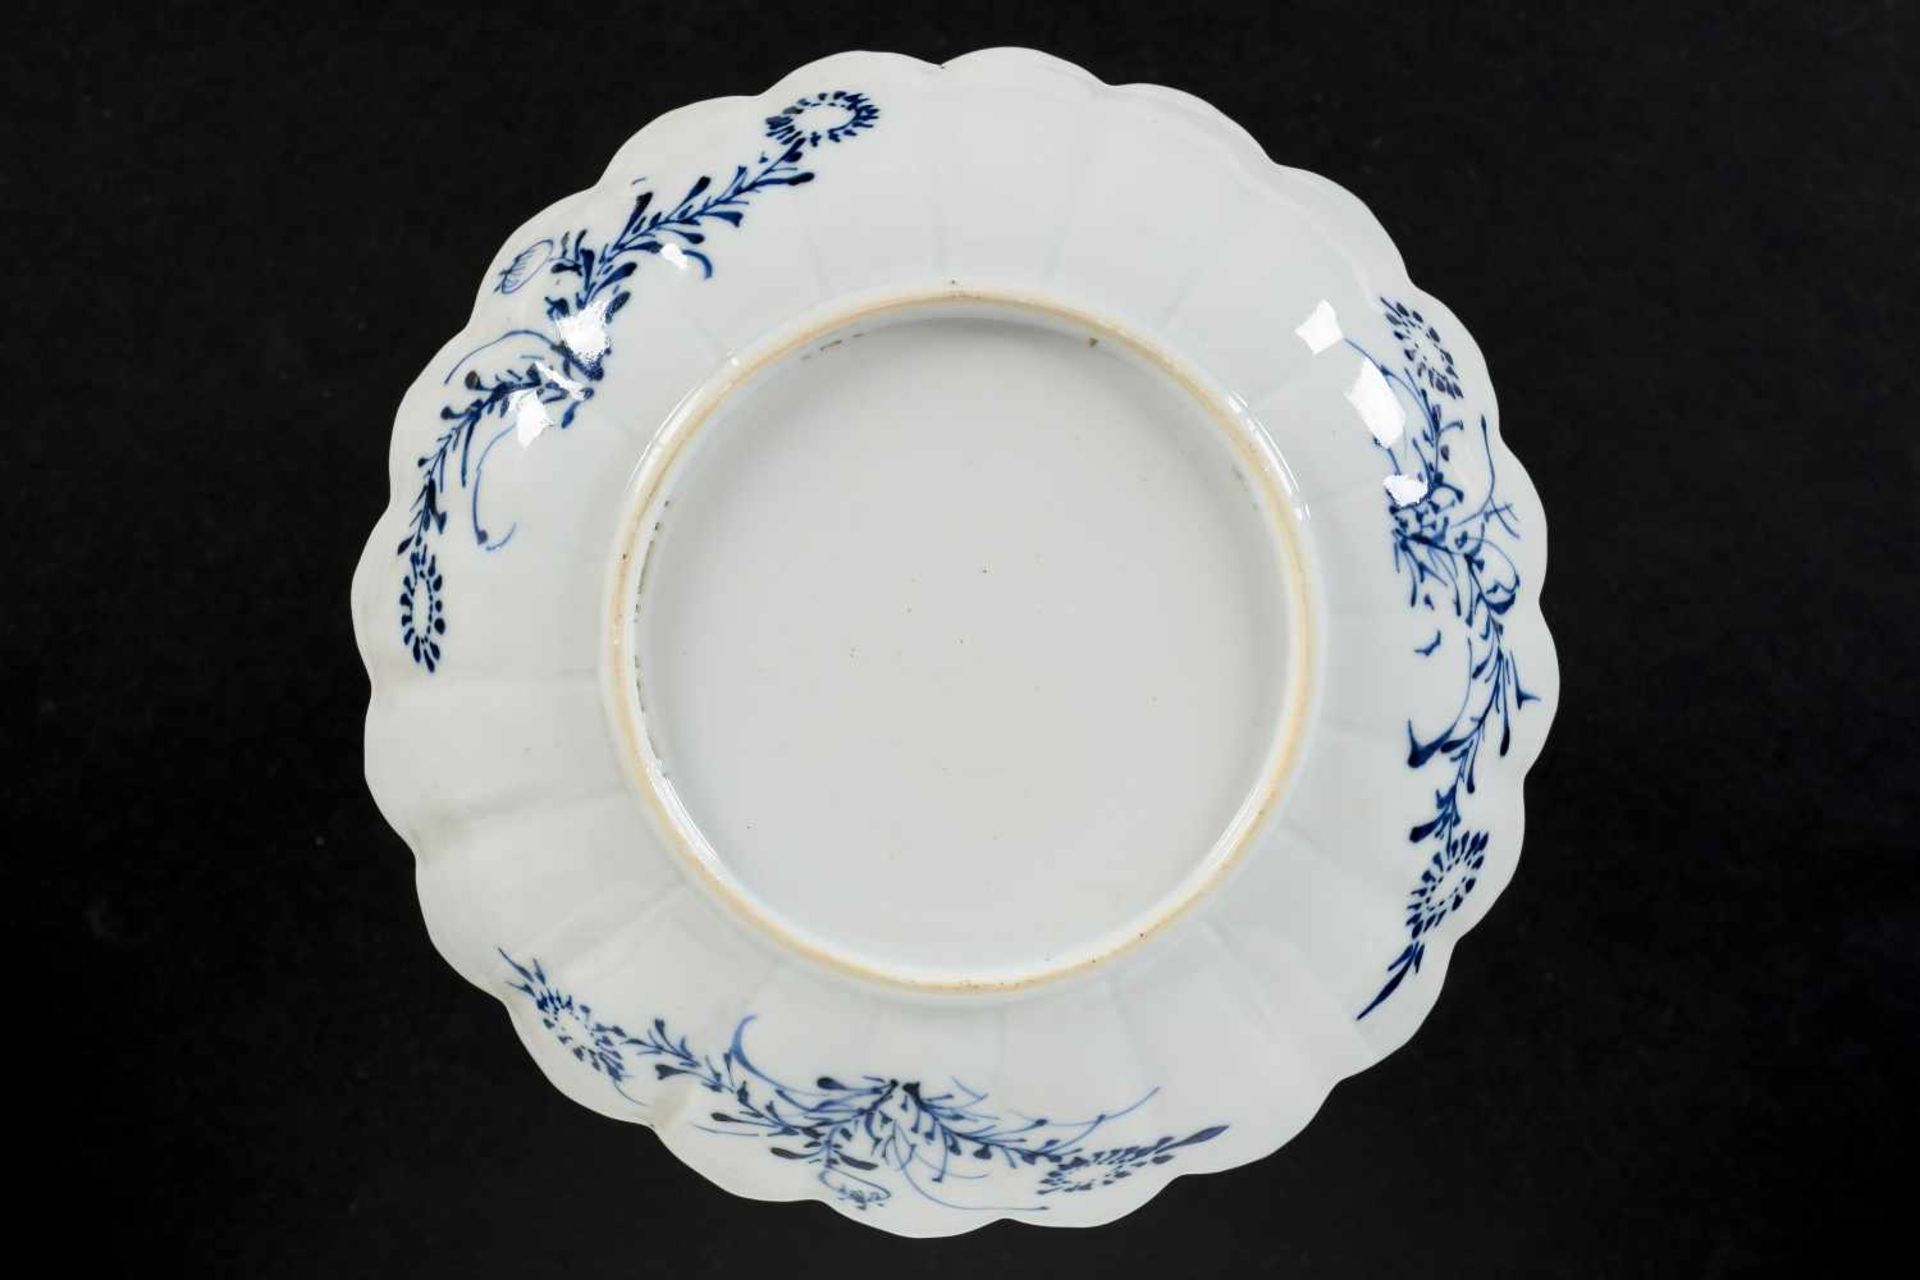 A set of six blue and white porcelain deep saucers with scalloped rim, decorated with flowers and - Bild 3 aus 8